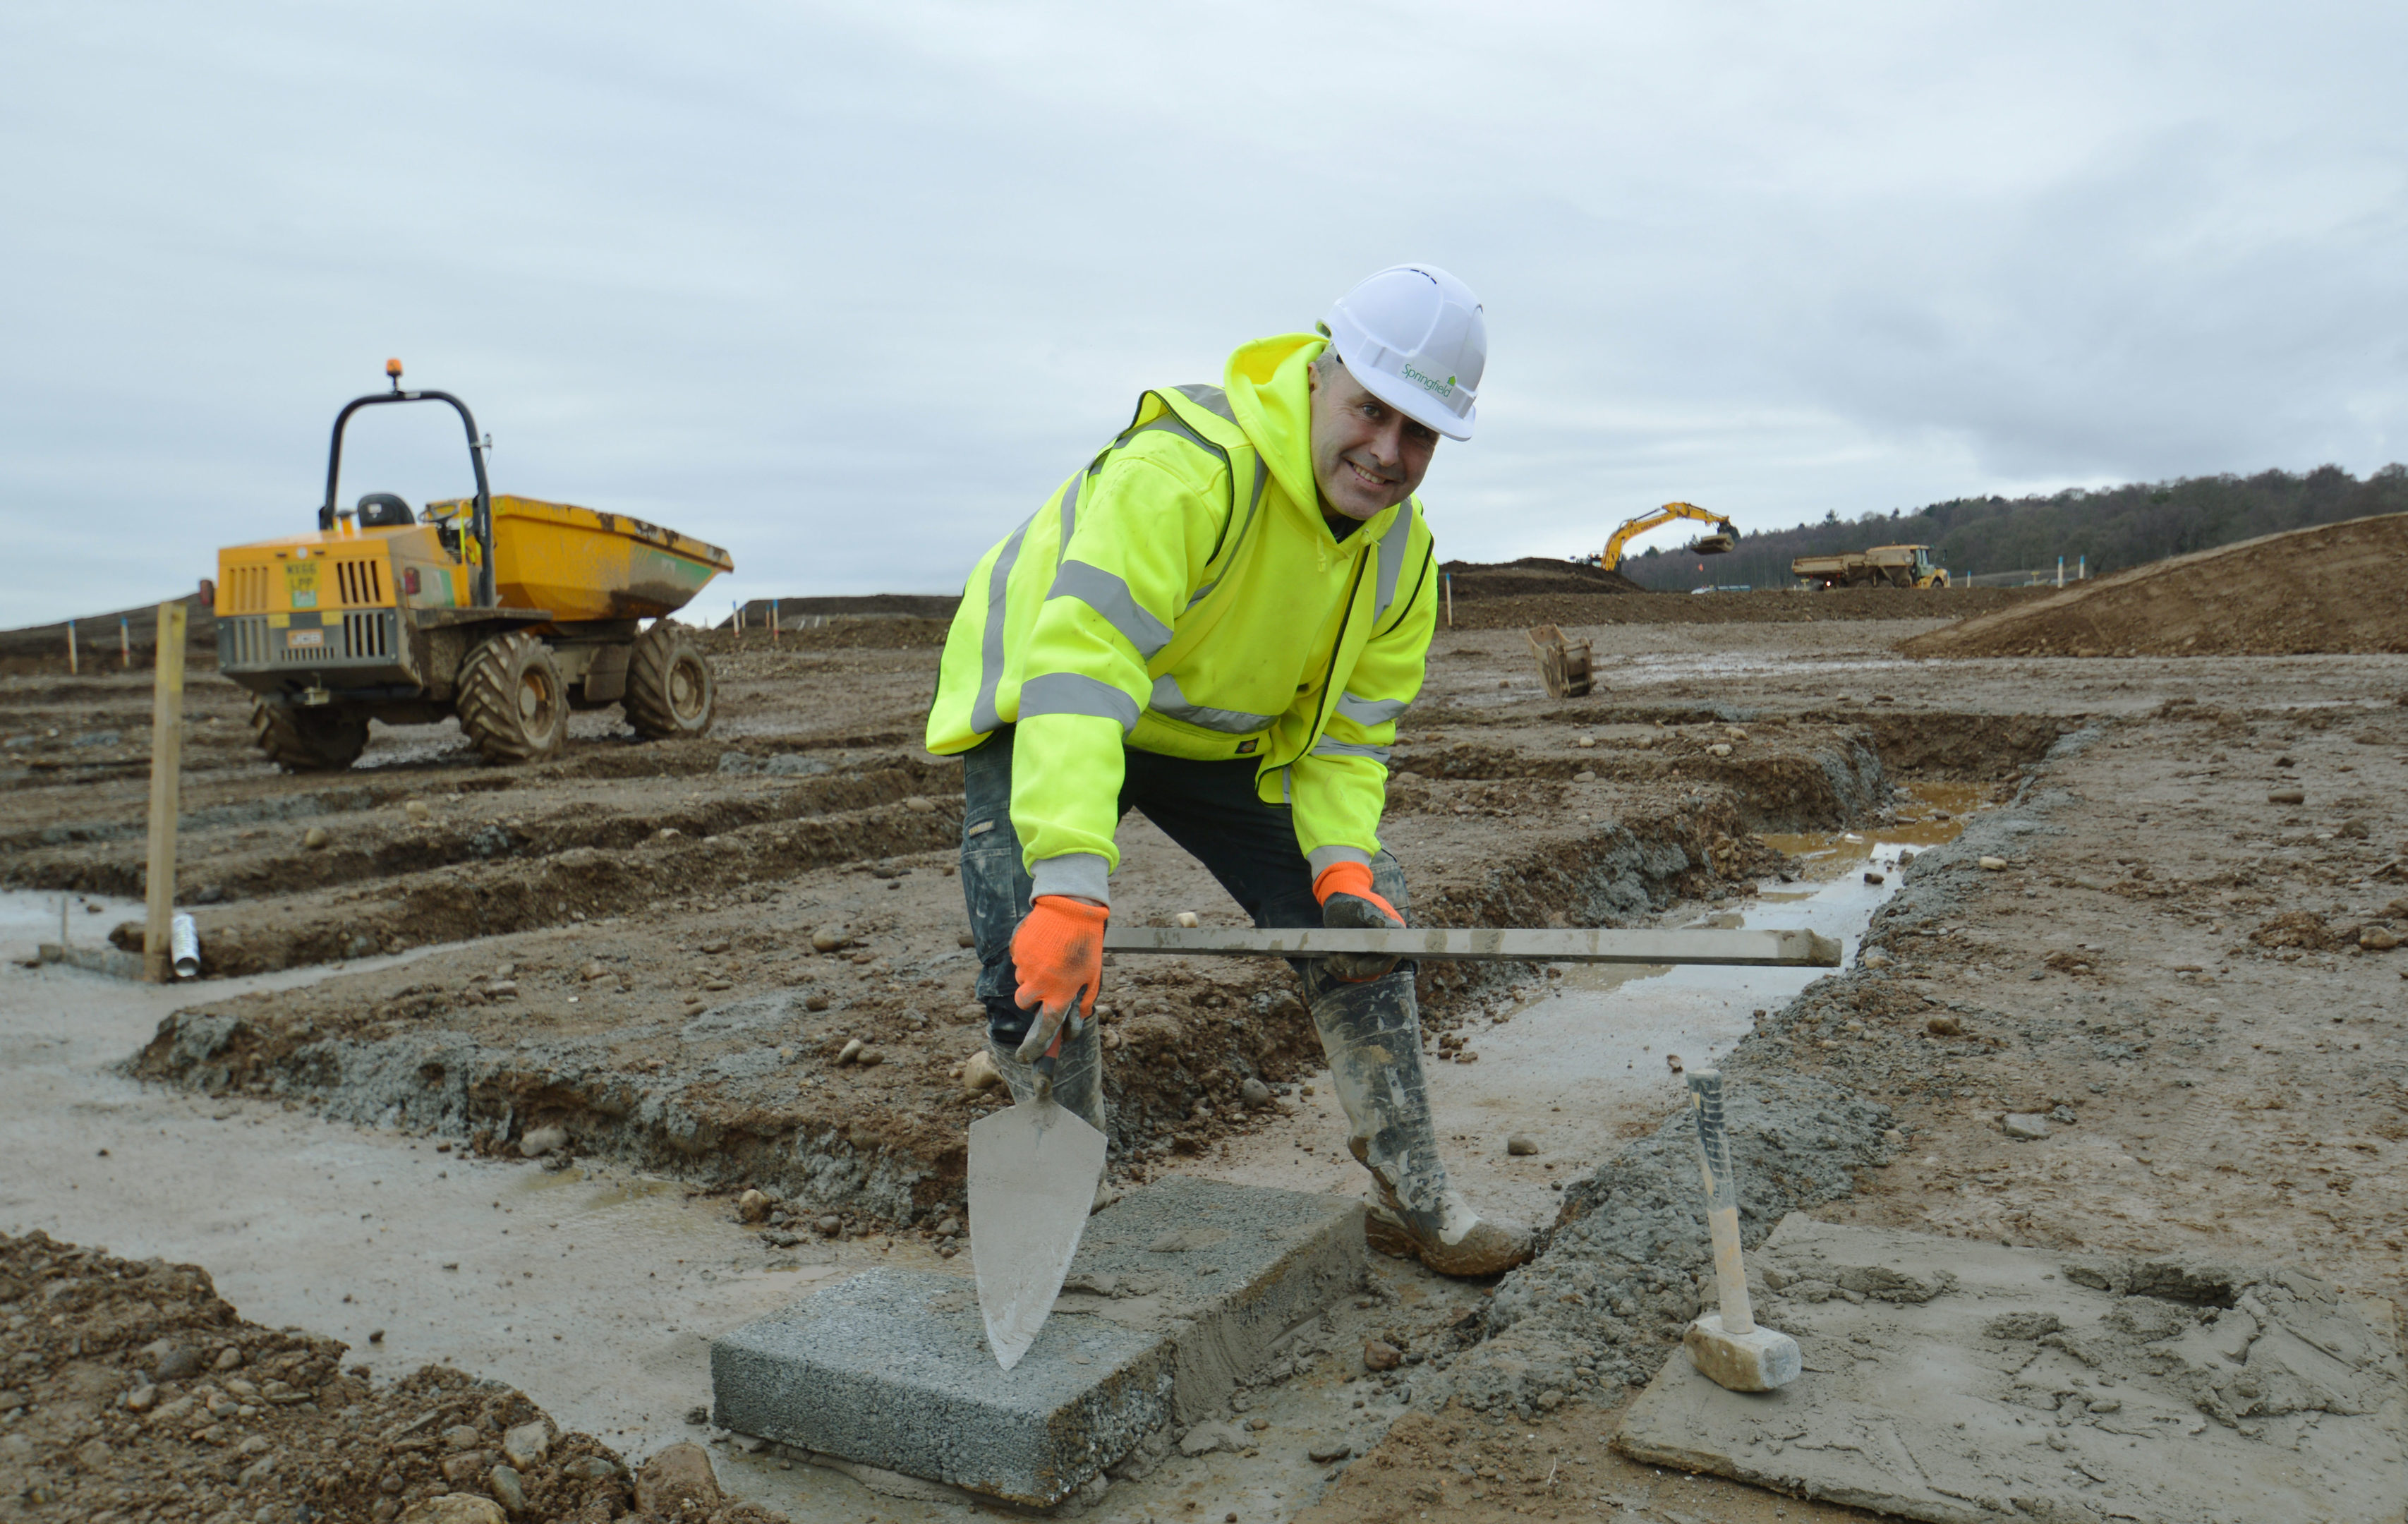 Bricklayer Peter McAninch lays the first bricks at the Bertha Park site.